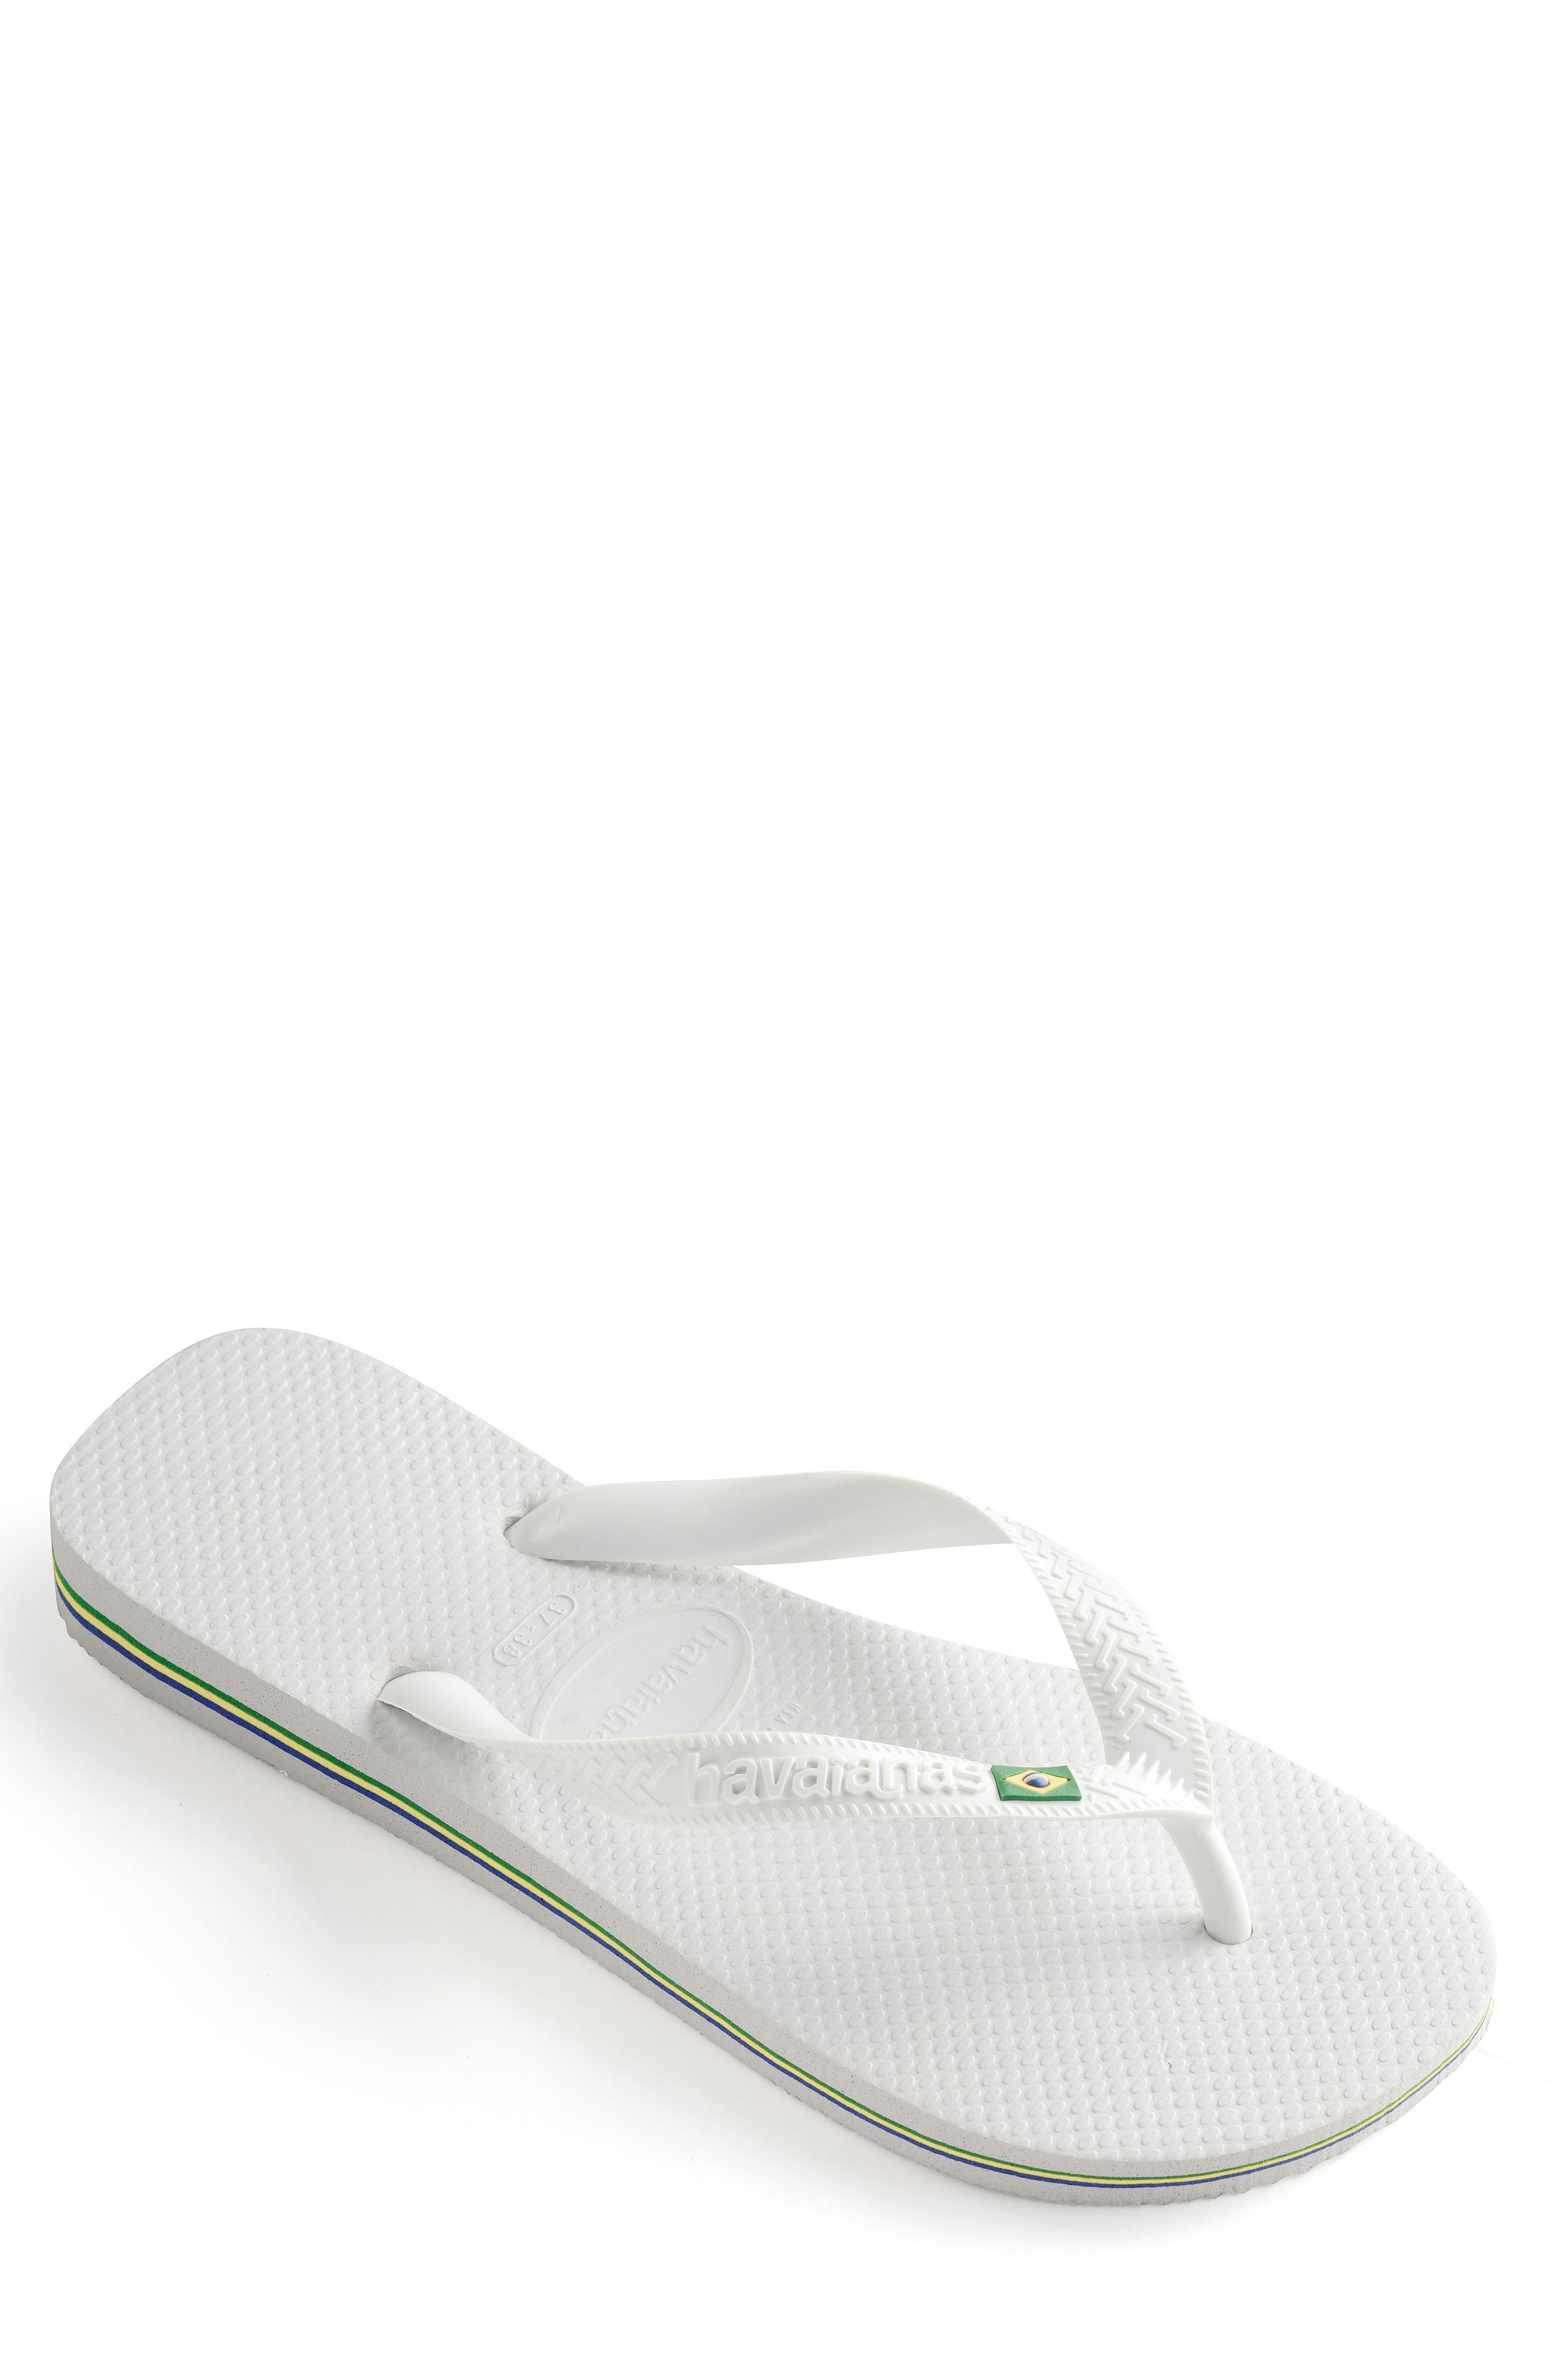 HAVAIANAS, 'Brazil' Flip Flop, Alternate thumbnail 2, color, WHITE